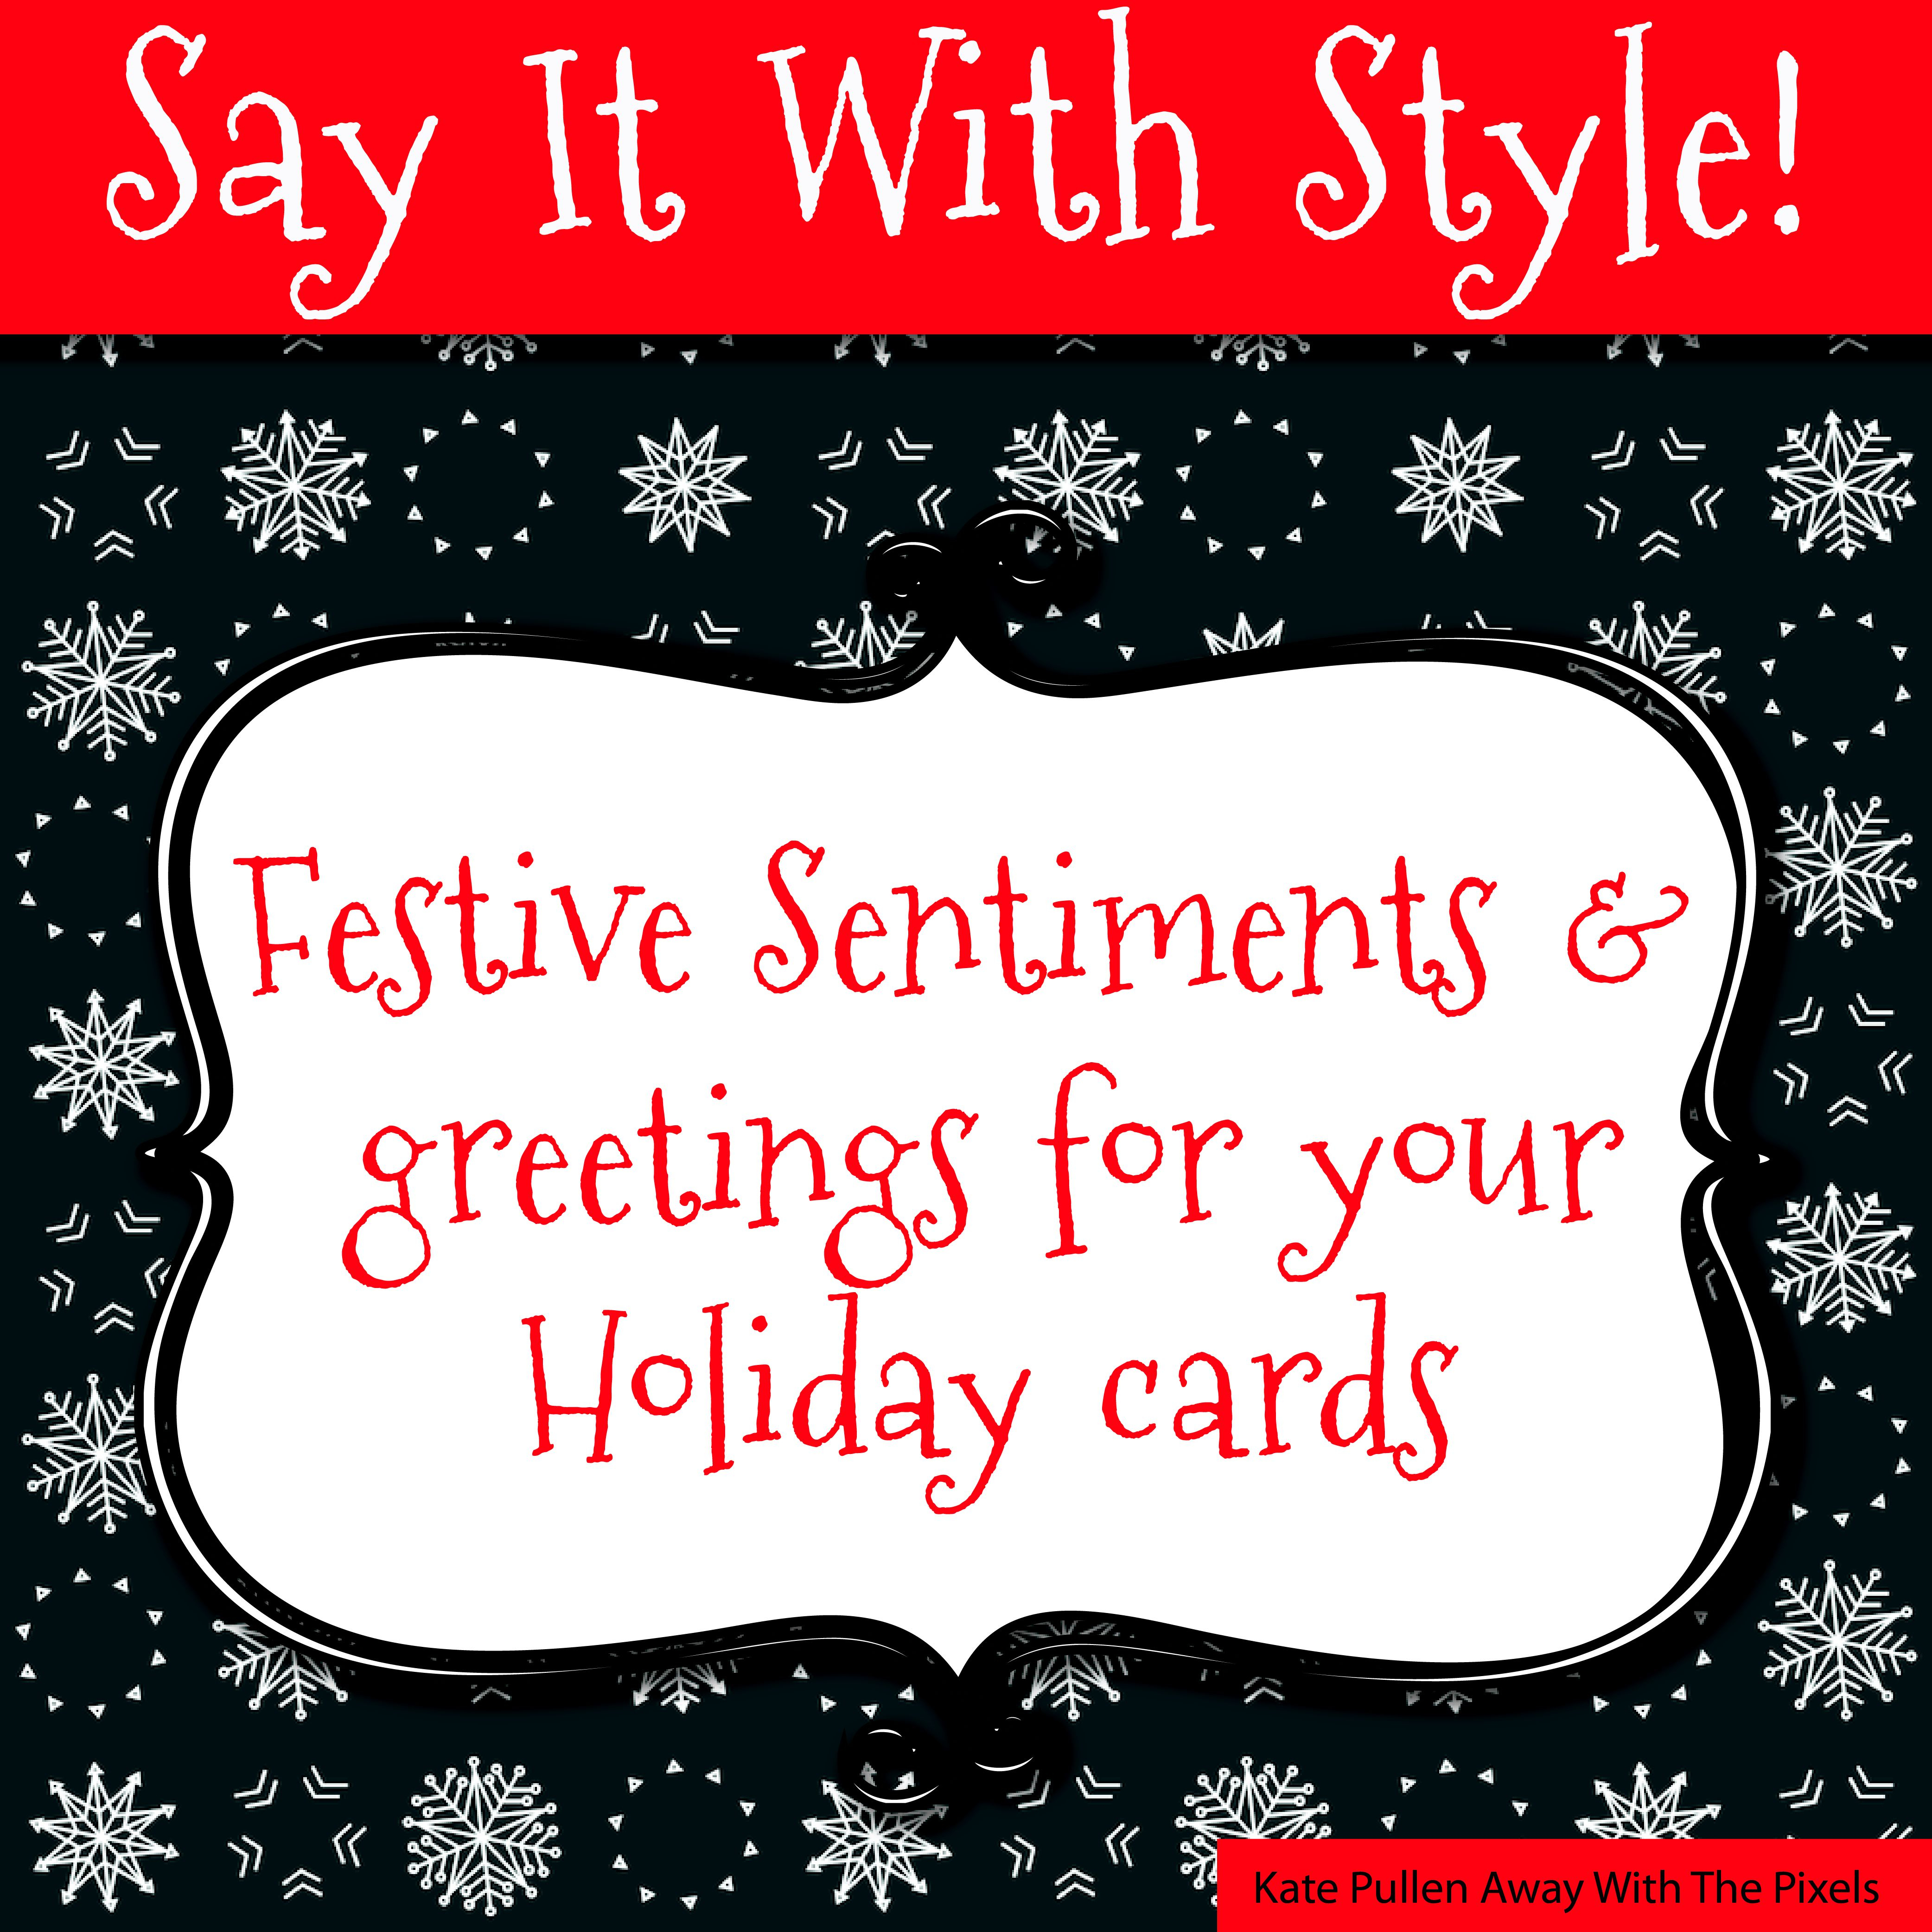 Sentiments And Greetings For Christmas Cards - Free Printable Greeting Card Sentiments